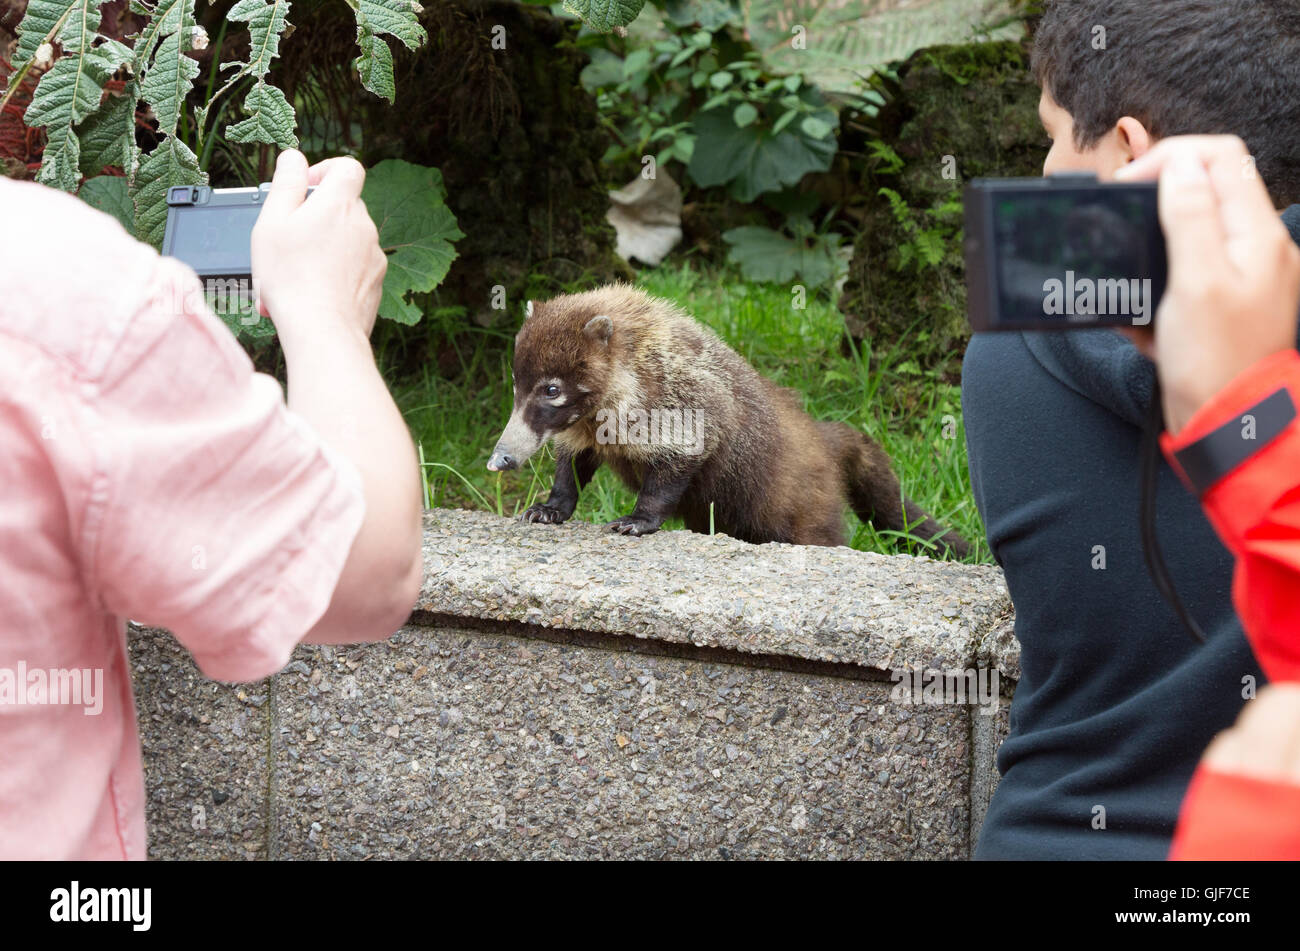 Children taking photos of a coati ( Coatimundi ), Poas Volcano National Park, Costa Rica, Central America - Stock Image